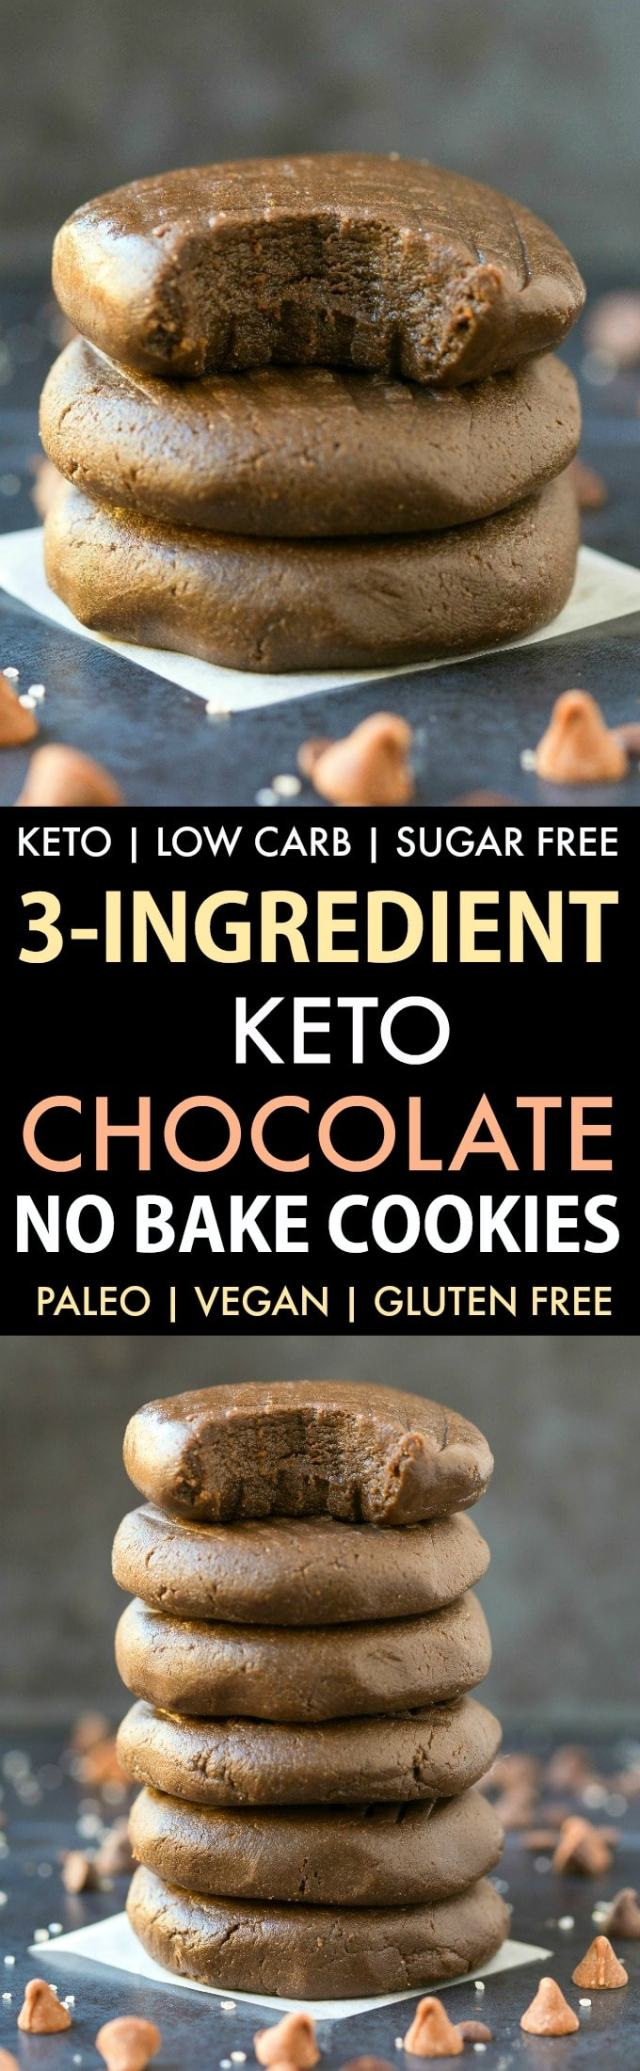 3-Ingredient Low Carb Keto Chocolate No Bake Cookies in a collage